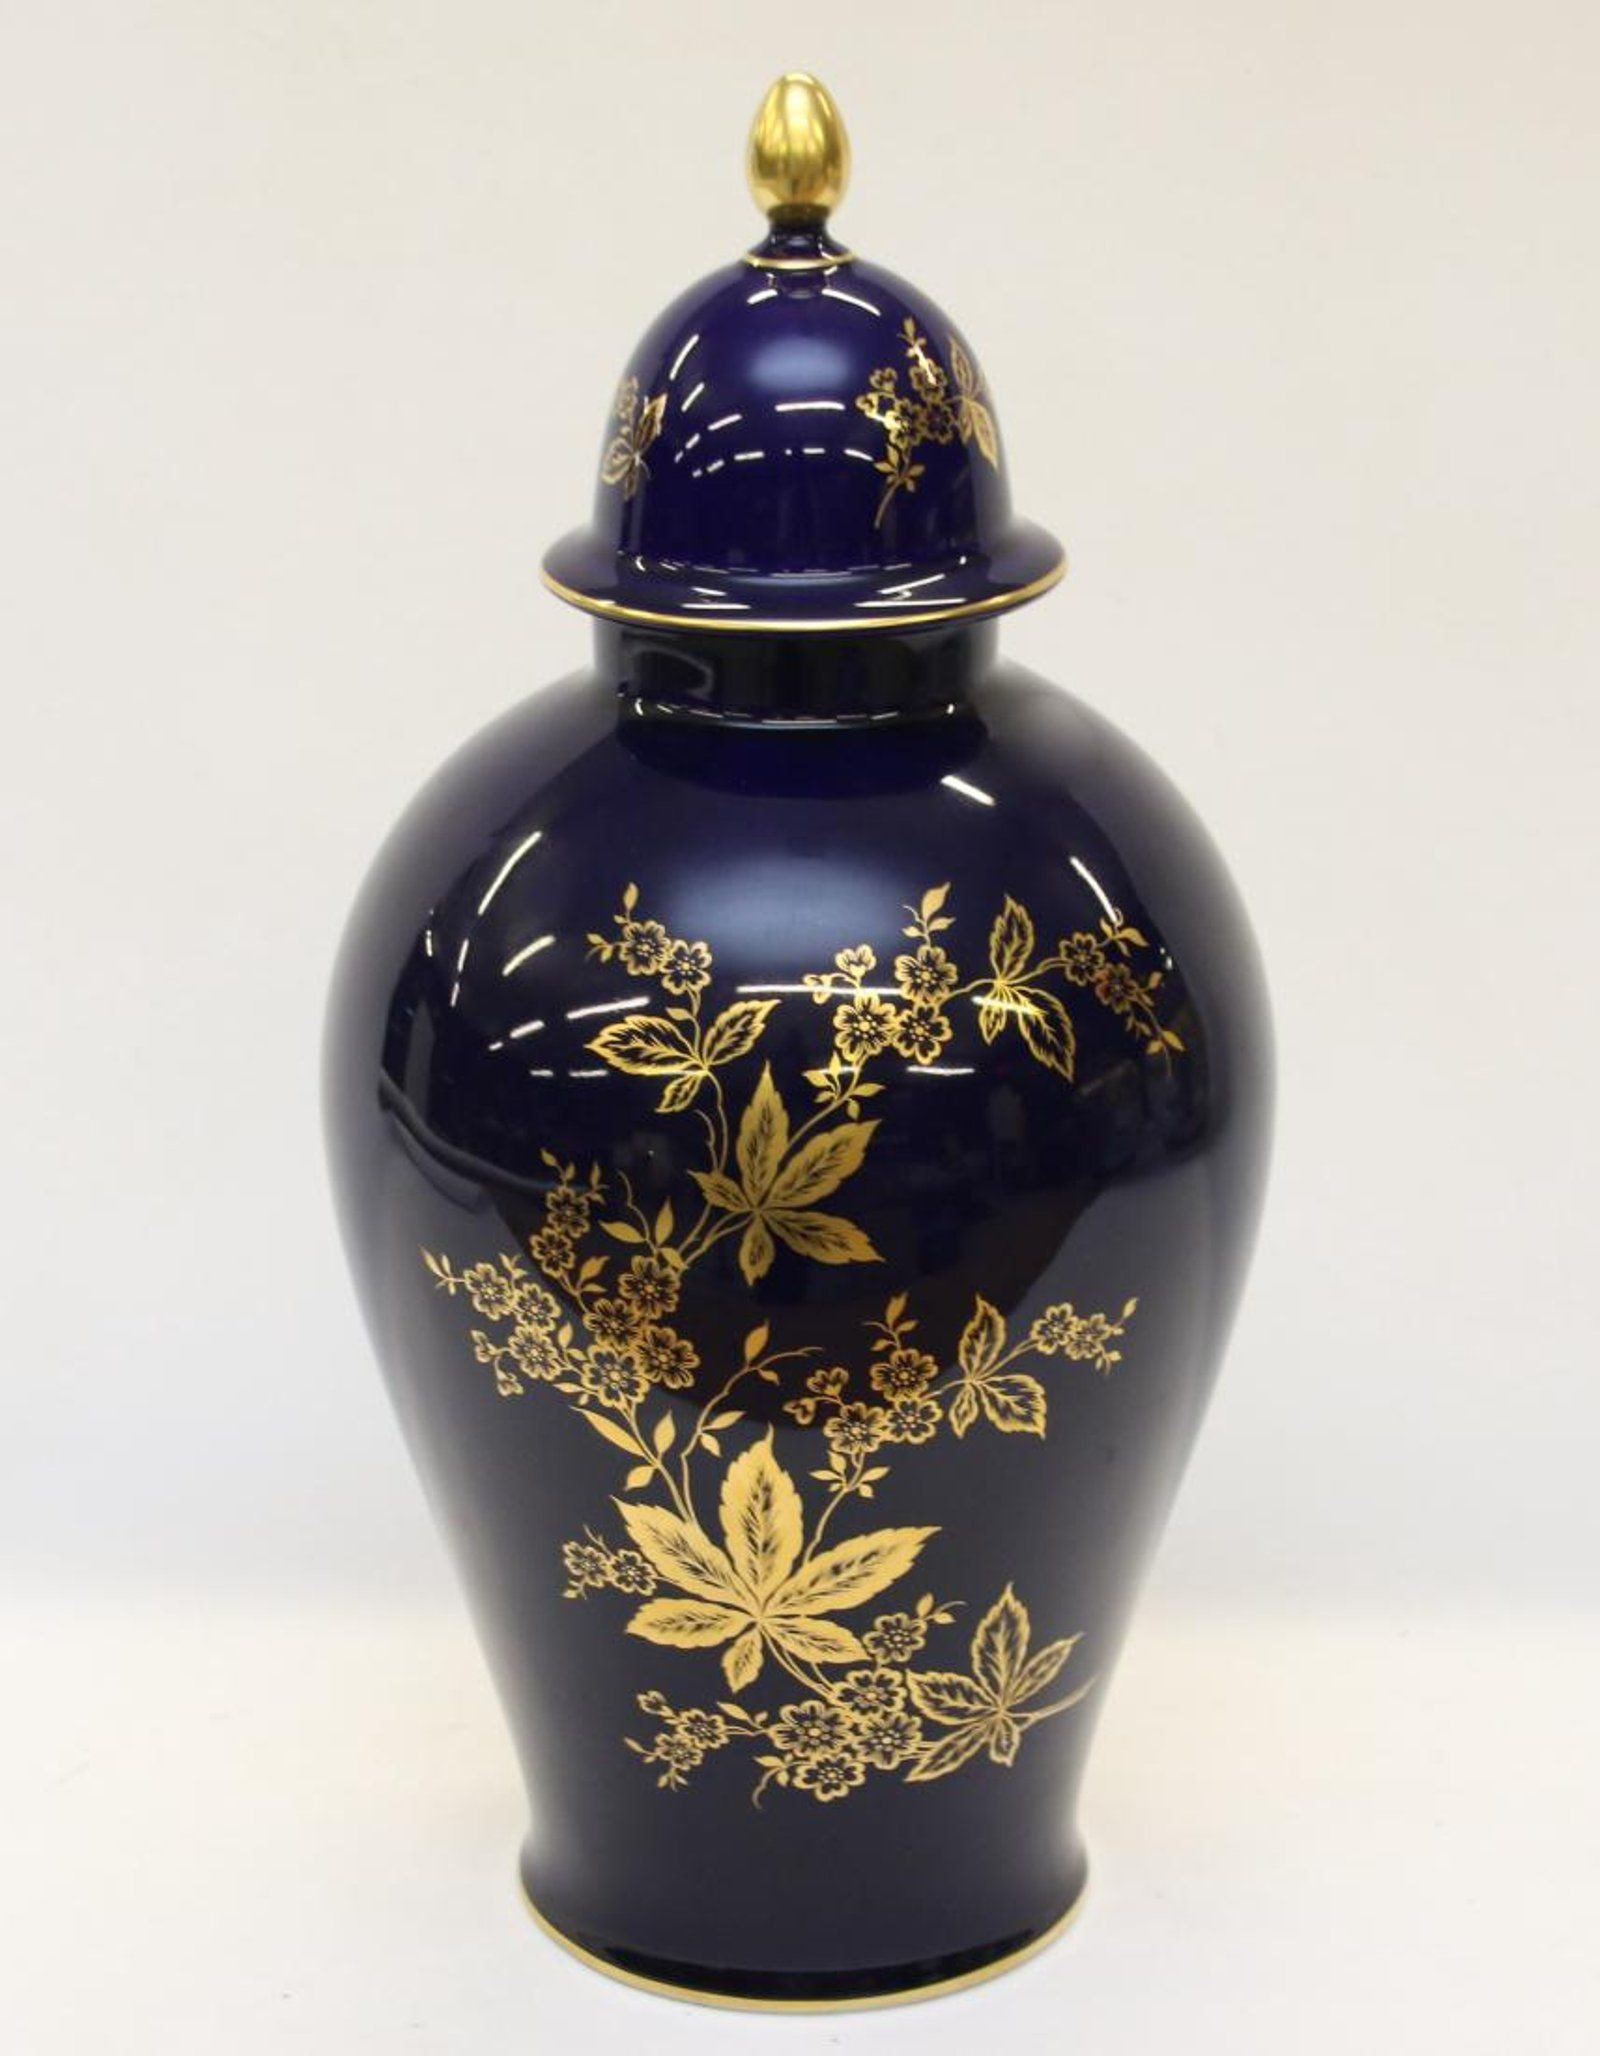 fine china vase made in japan of bavarian vase on pinterest cobalt blue and cobalt within belgian cobalt blue vase with flowers